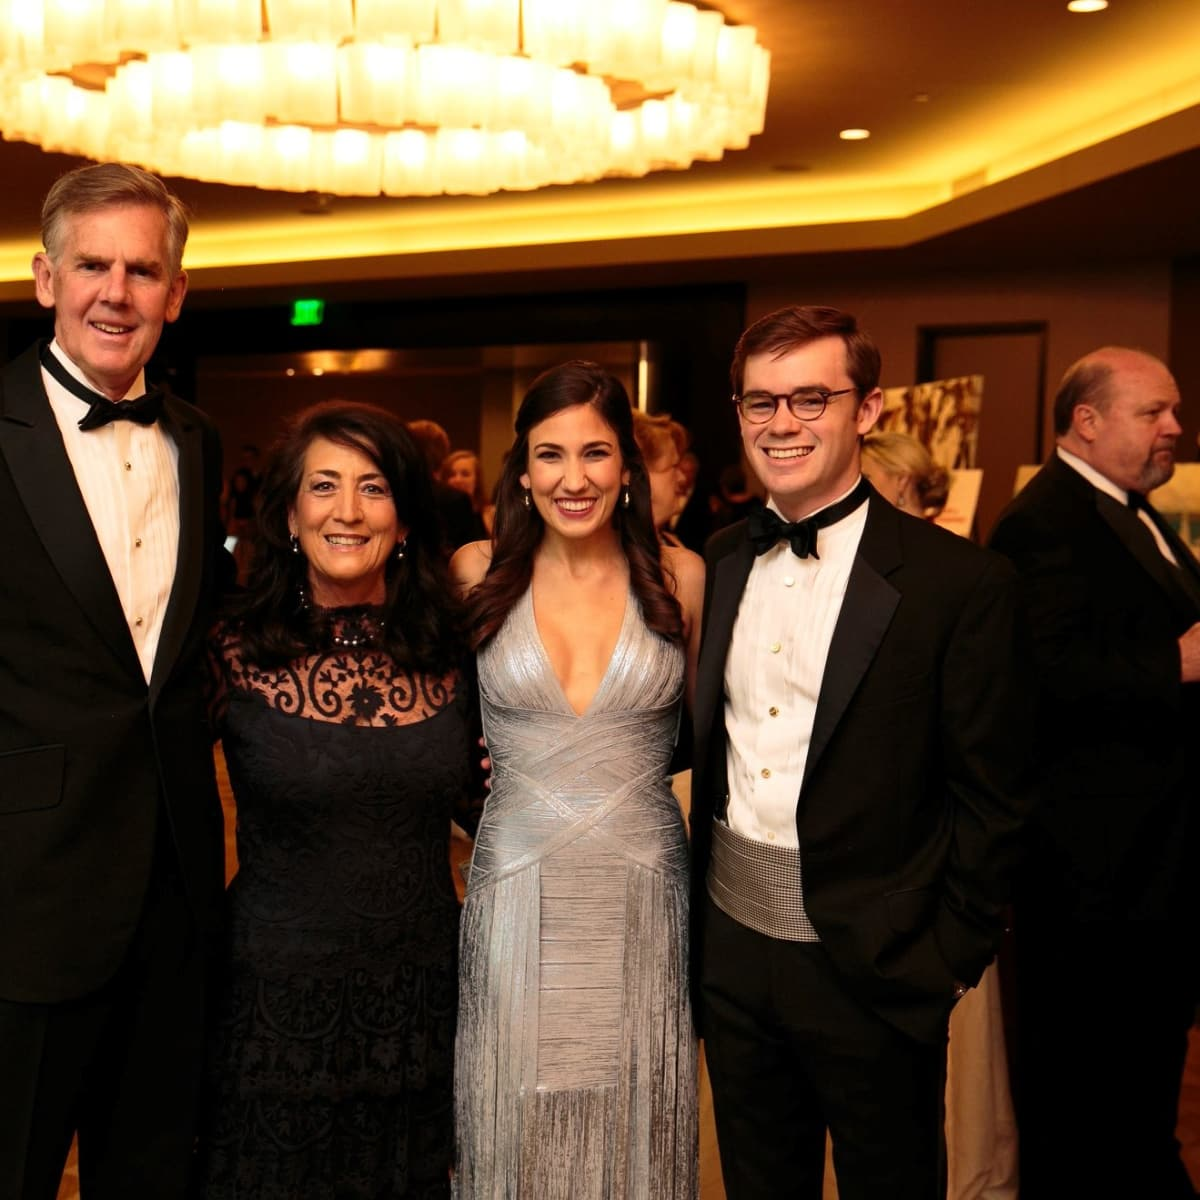 Robert and Debra Hitzelberger, DSOL President Kay Hitzelberger and Stuart R. Duenner, Slipper Club Havana Nights 2018